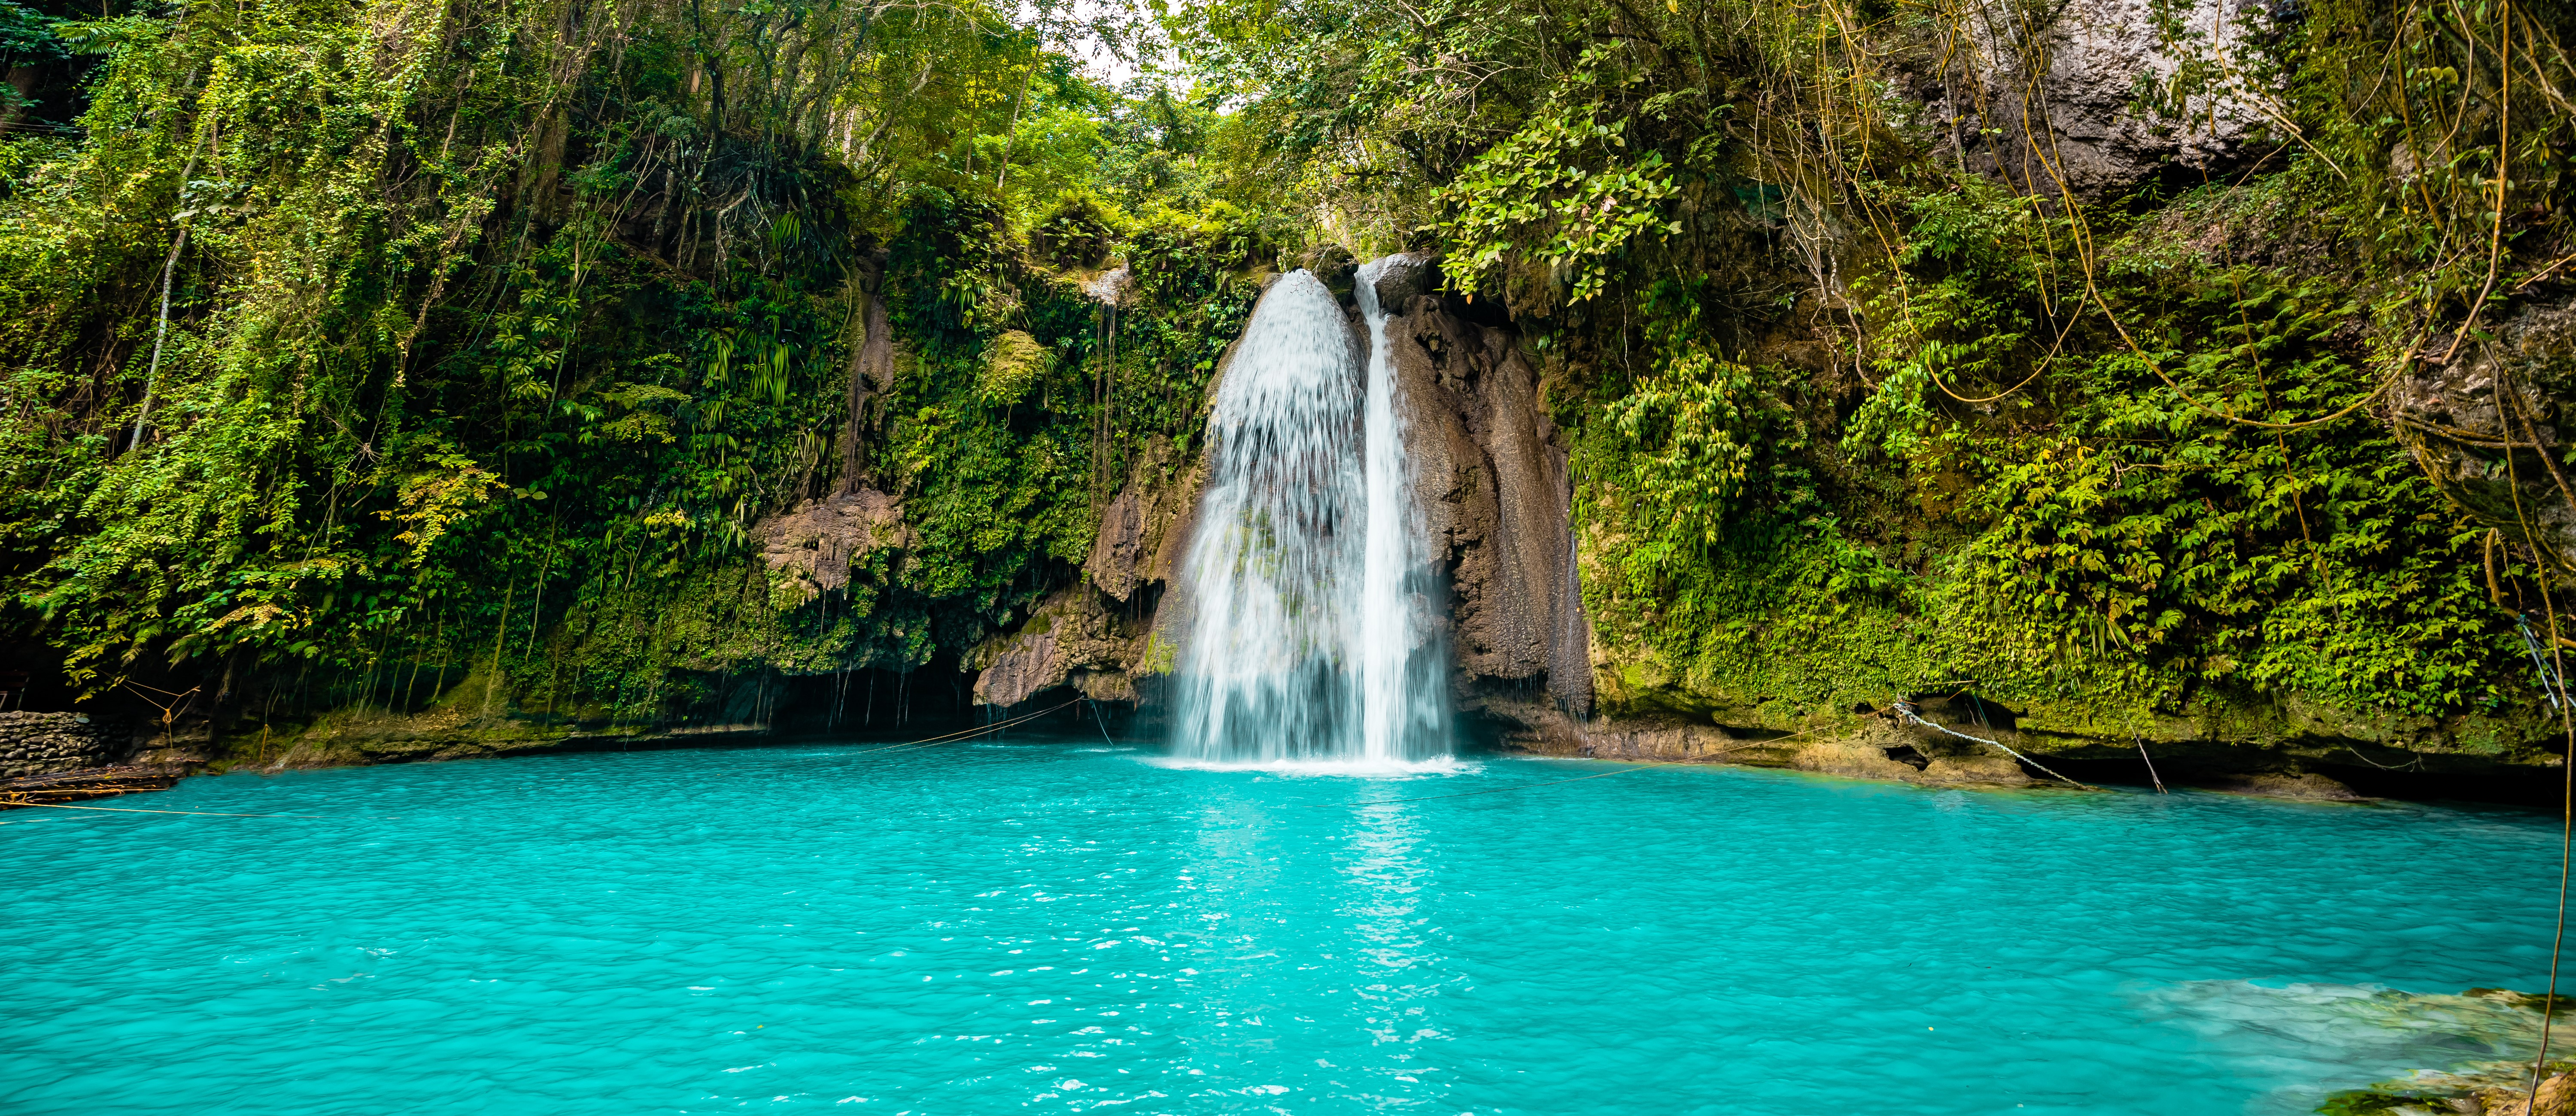 15 Best Scenic Waterfalls in the Philippines